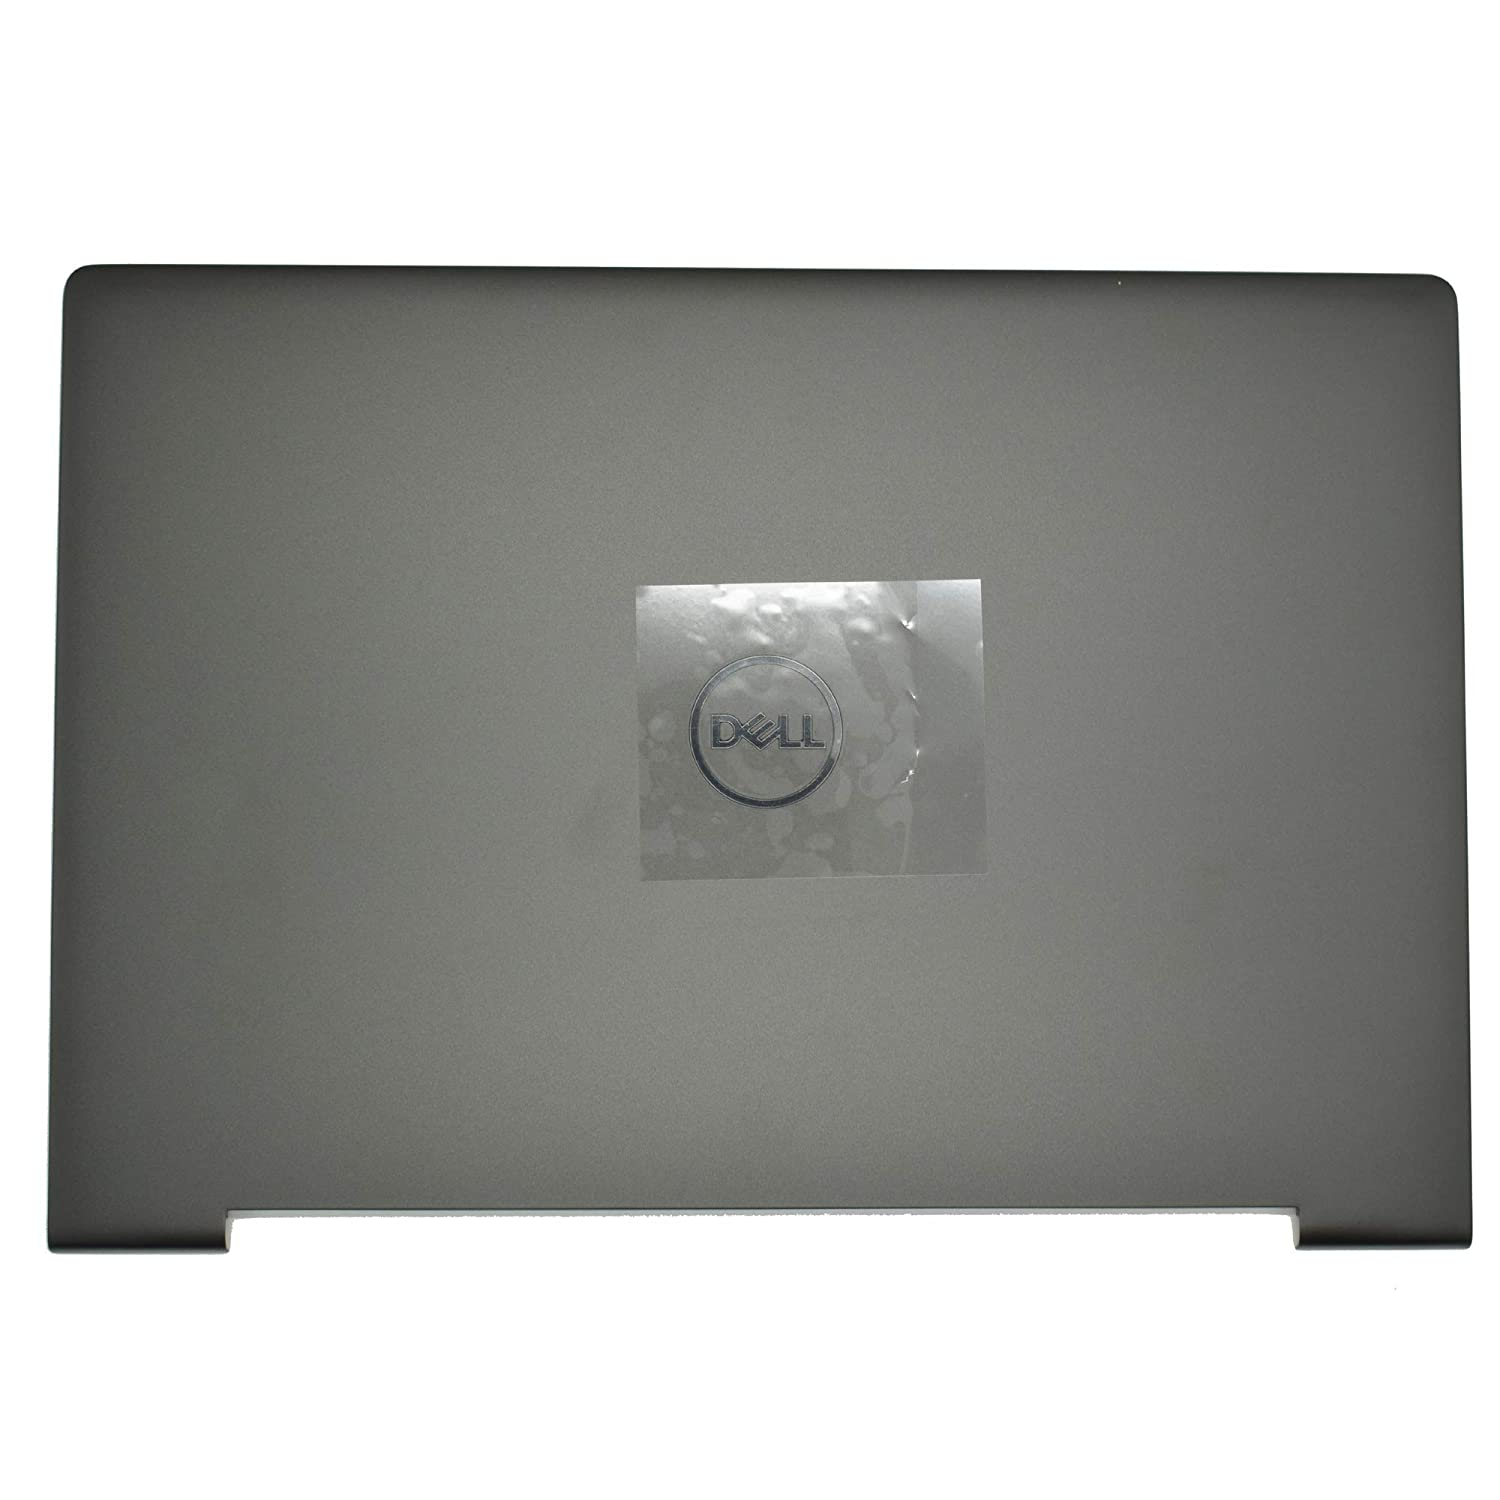 LHYParts - New Rear Lid Back Cover Top Case for Dell Inspiron 7390 2-in-1 Black 0H5N9Y H5N9Y